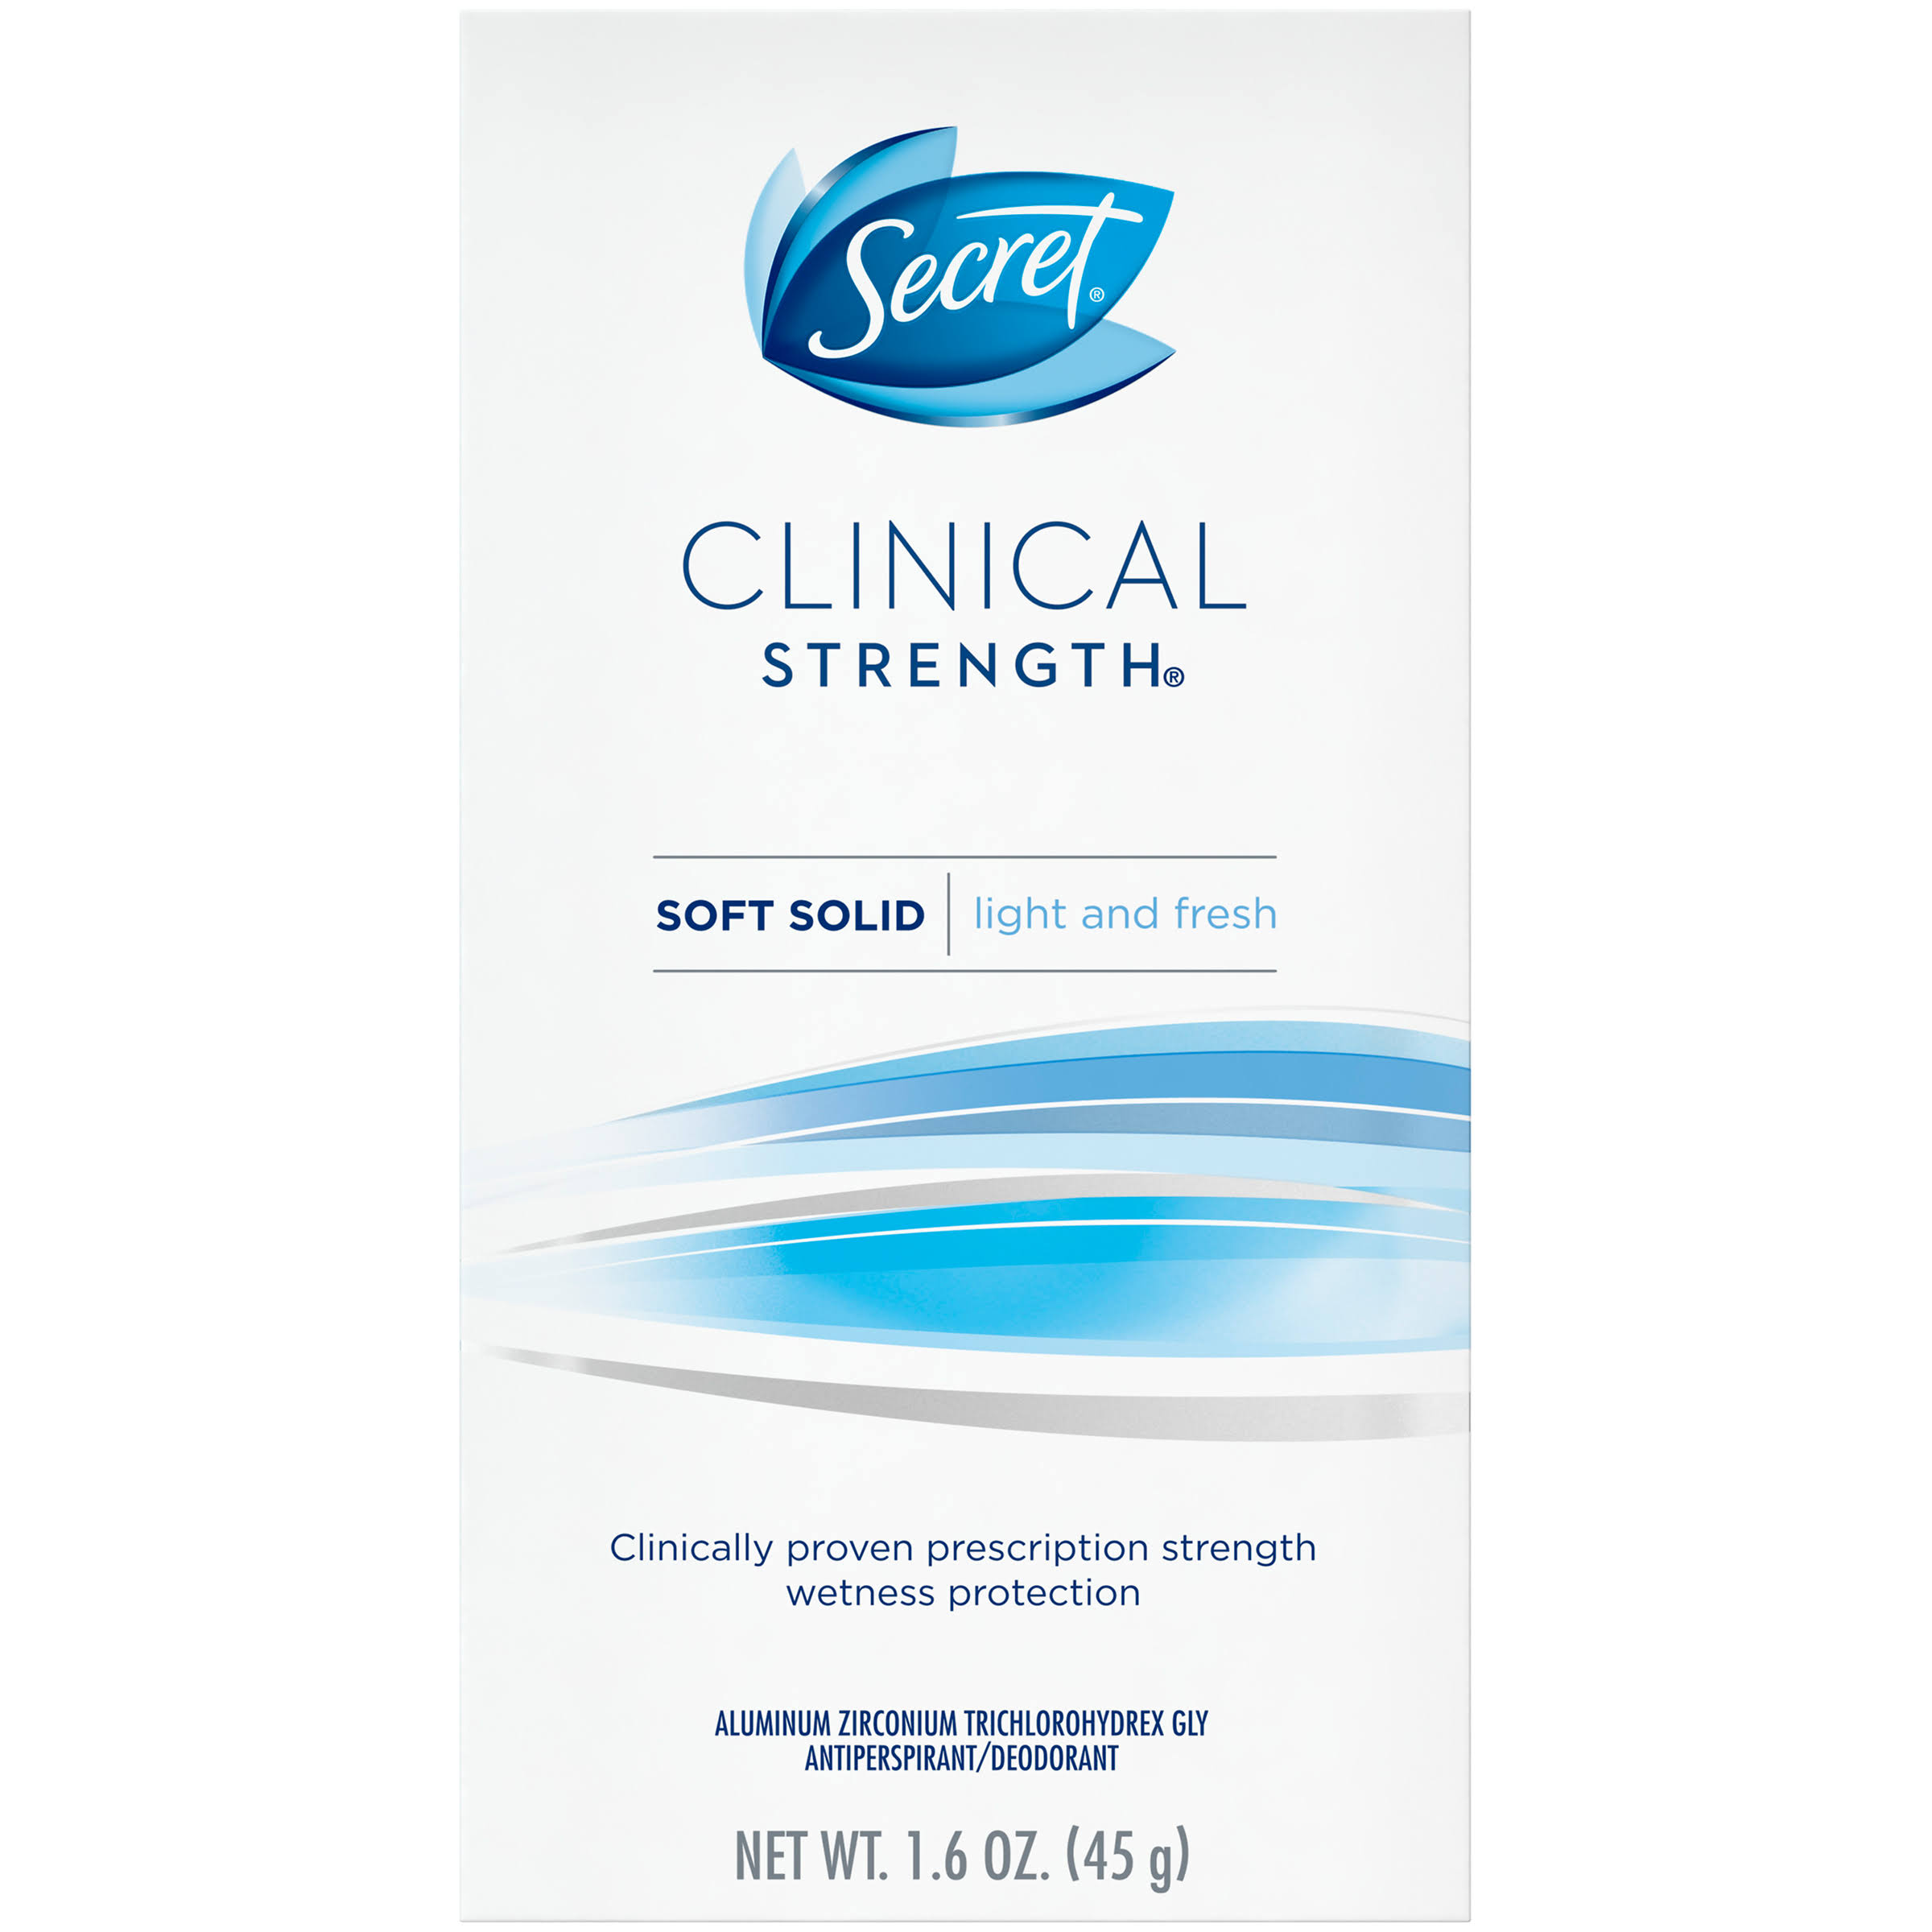 Secret Clinical Strength Soft Solid Light And Fresh Antiperspirant - 45g